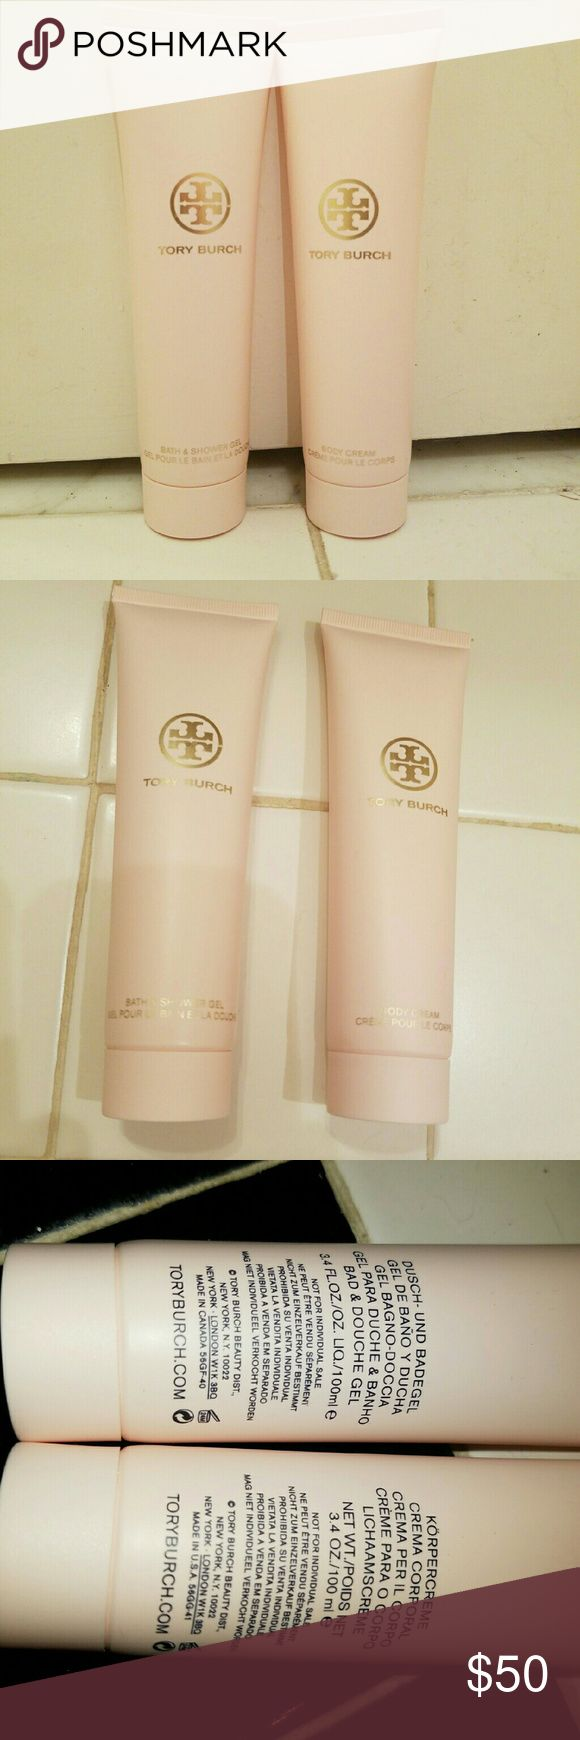 Tory Burch Brand New Body Creme & Bath/Shower Gel This is Tory Burch Brand New Body Creme and Shower/Bath Gel. Never opened. Both are 3.4 FL.OZ. I love this Tory Scent but I'm not one to open something so strong on a daily basis. I am open to offers for this listing and  all others! I just want my things to make their way to someone else to be enjoyed. Tory Burch Makeup